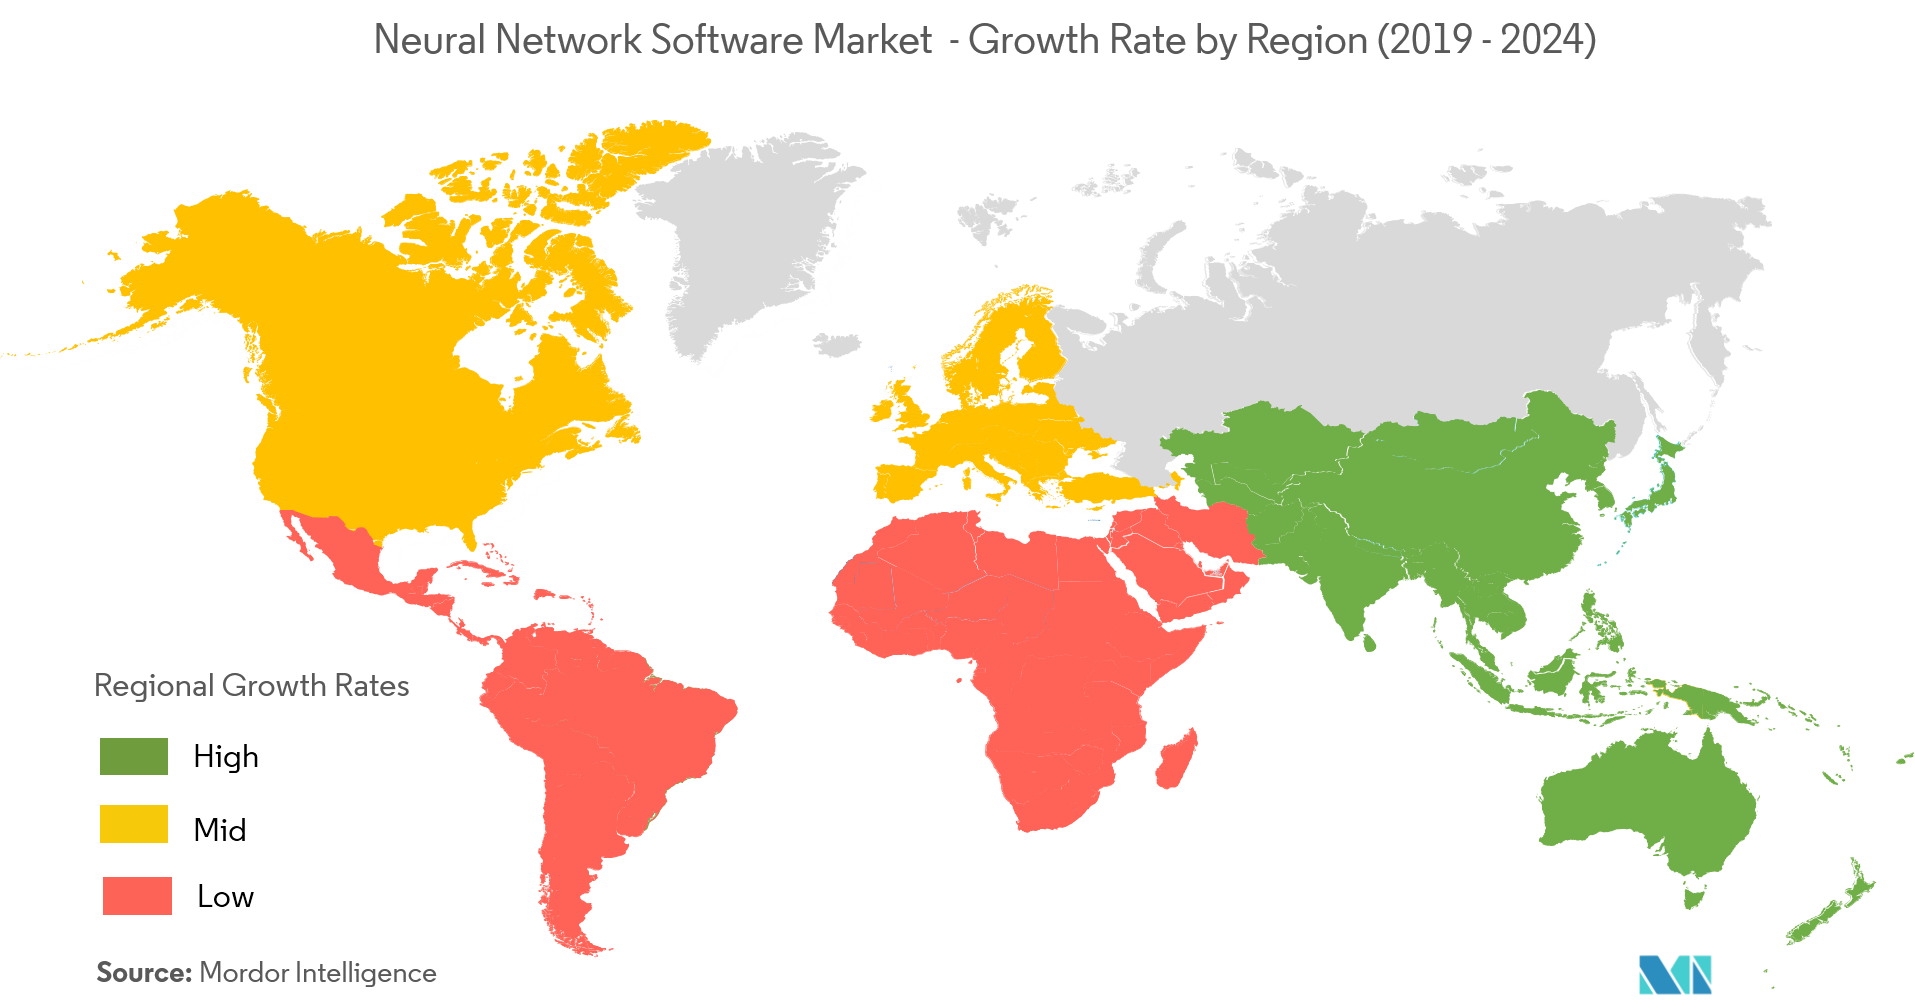 Regional Growth_Neural Network Software Market